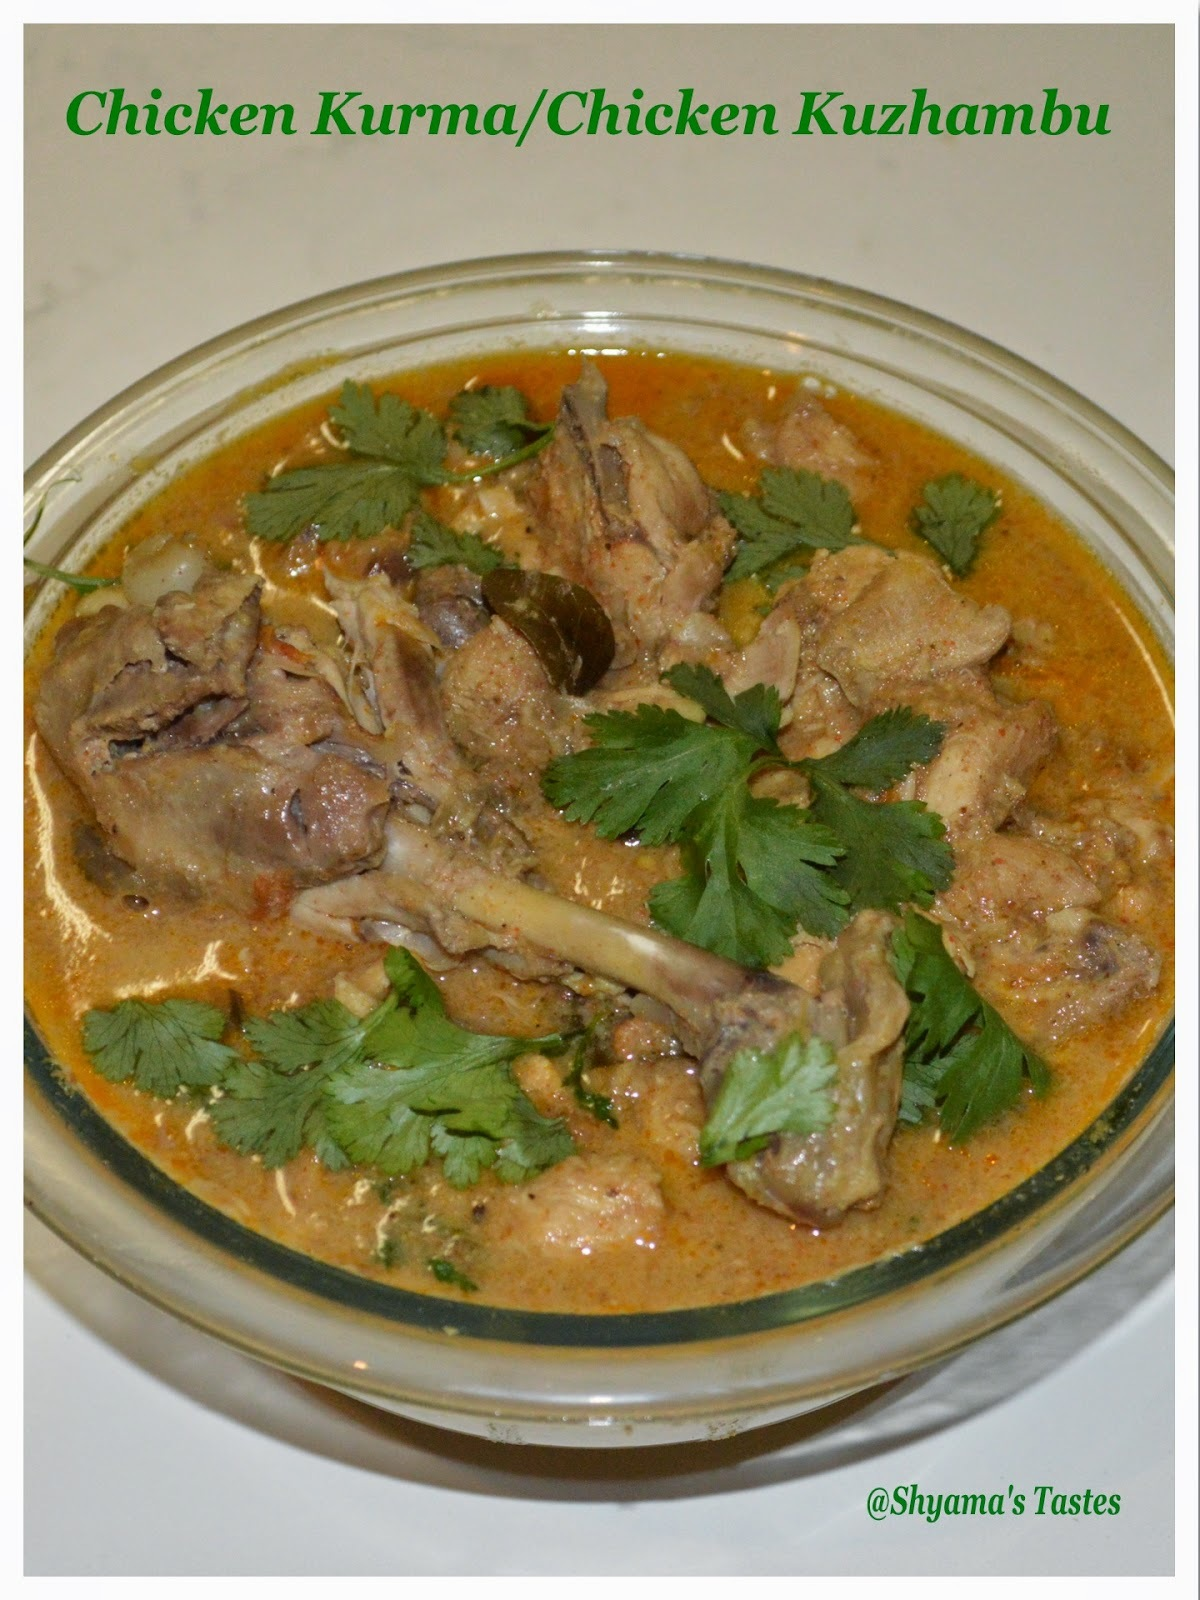 Chicken Kurma/Chicken Kuzhambu